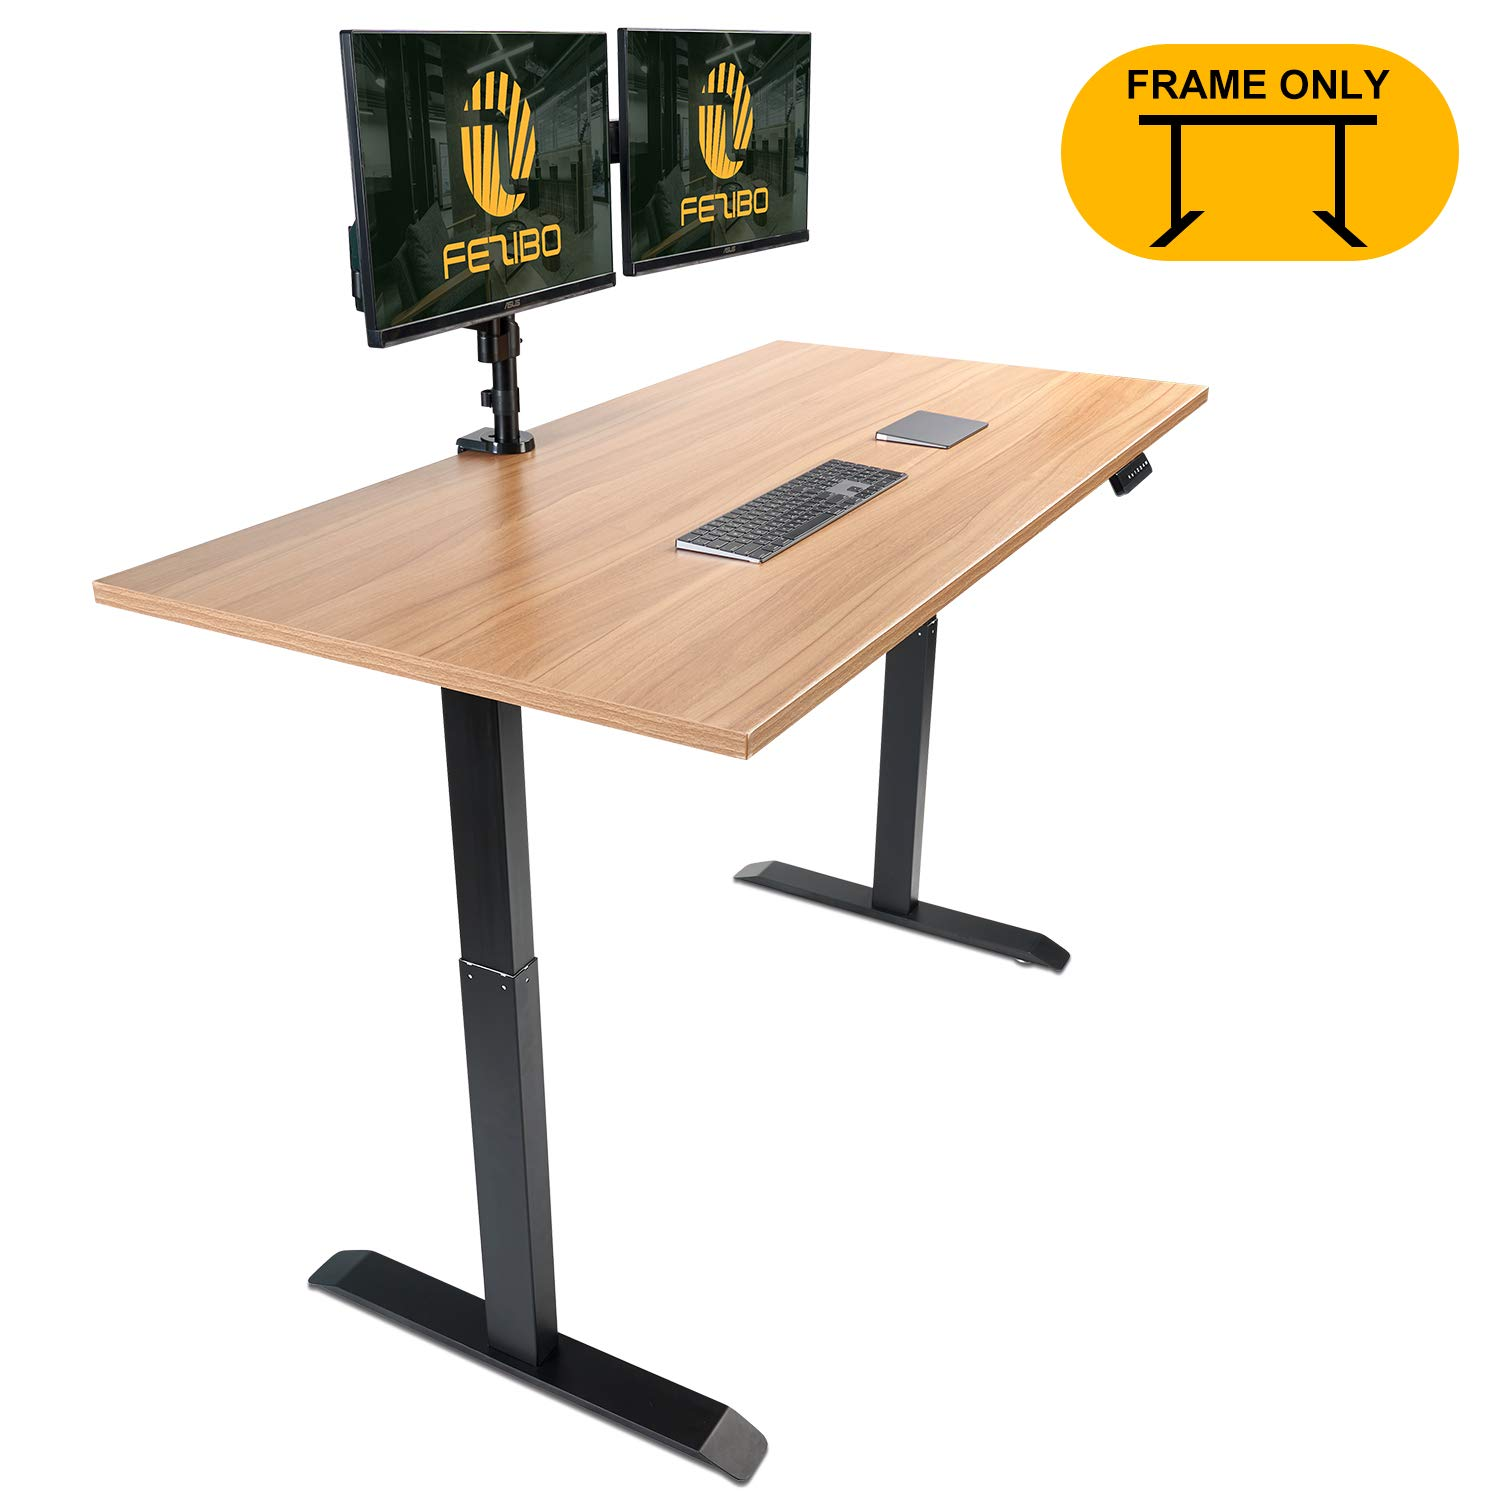 Electric Stand up Desk Frame - FEZIBO Single Motor with Cable Management Rack Height Adjustable Sit Stand Standing Desk Base Workstation